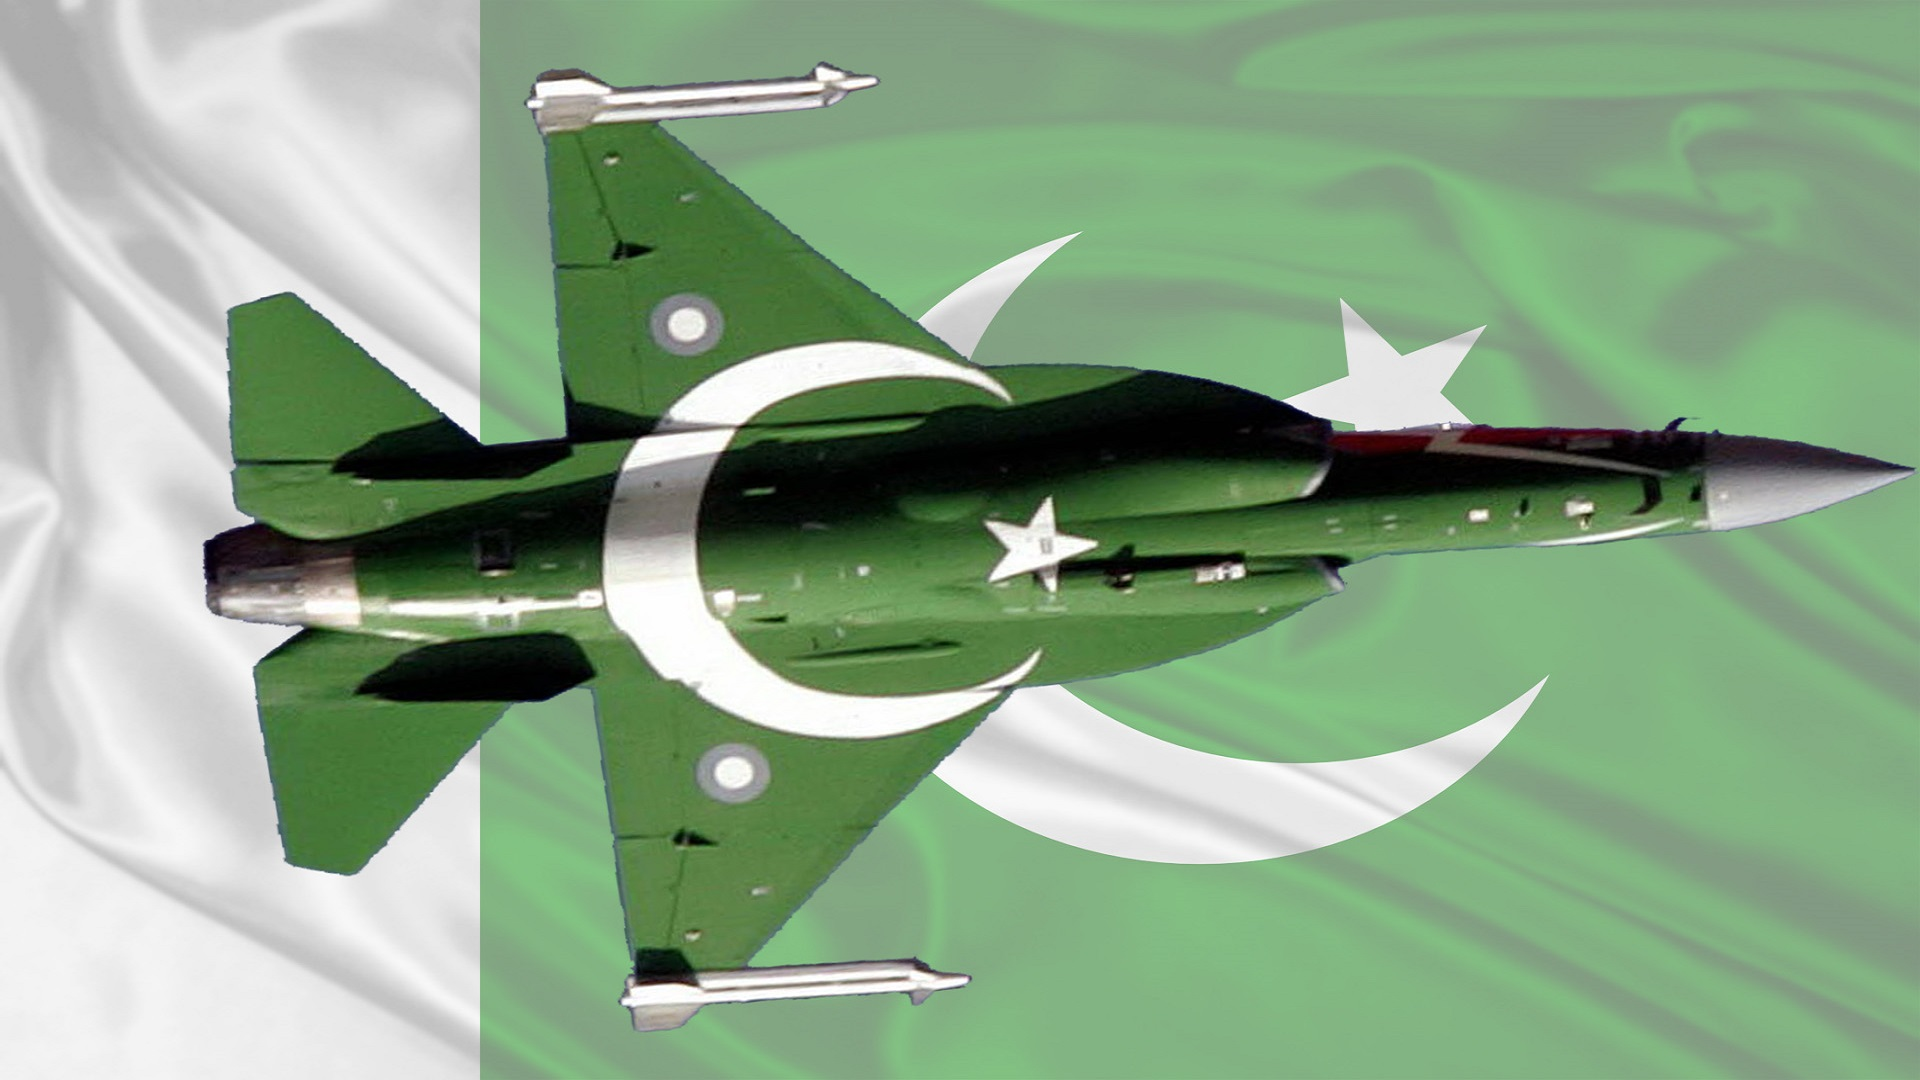 Pakistani flag wallpapers hd free hd wallpaper for 3d wallpapers for home wall in pakistan